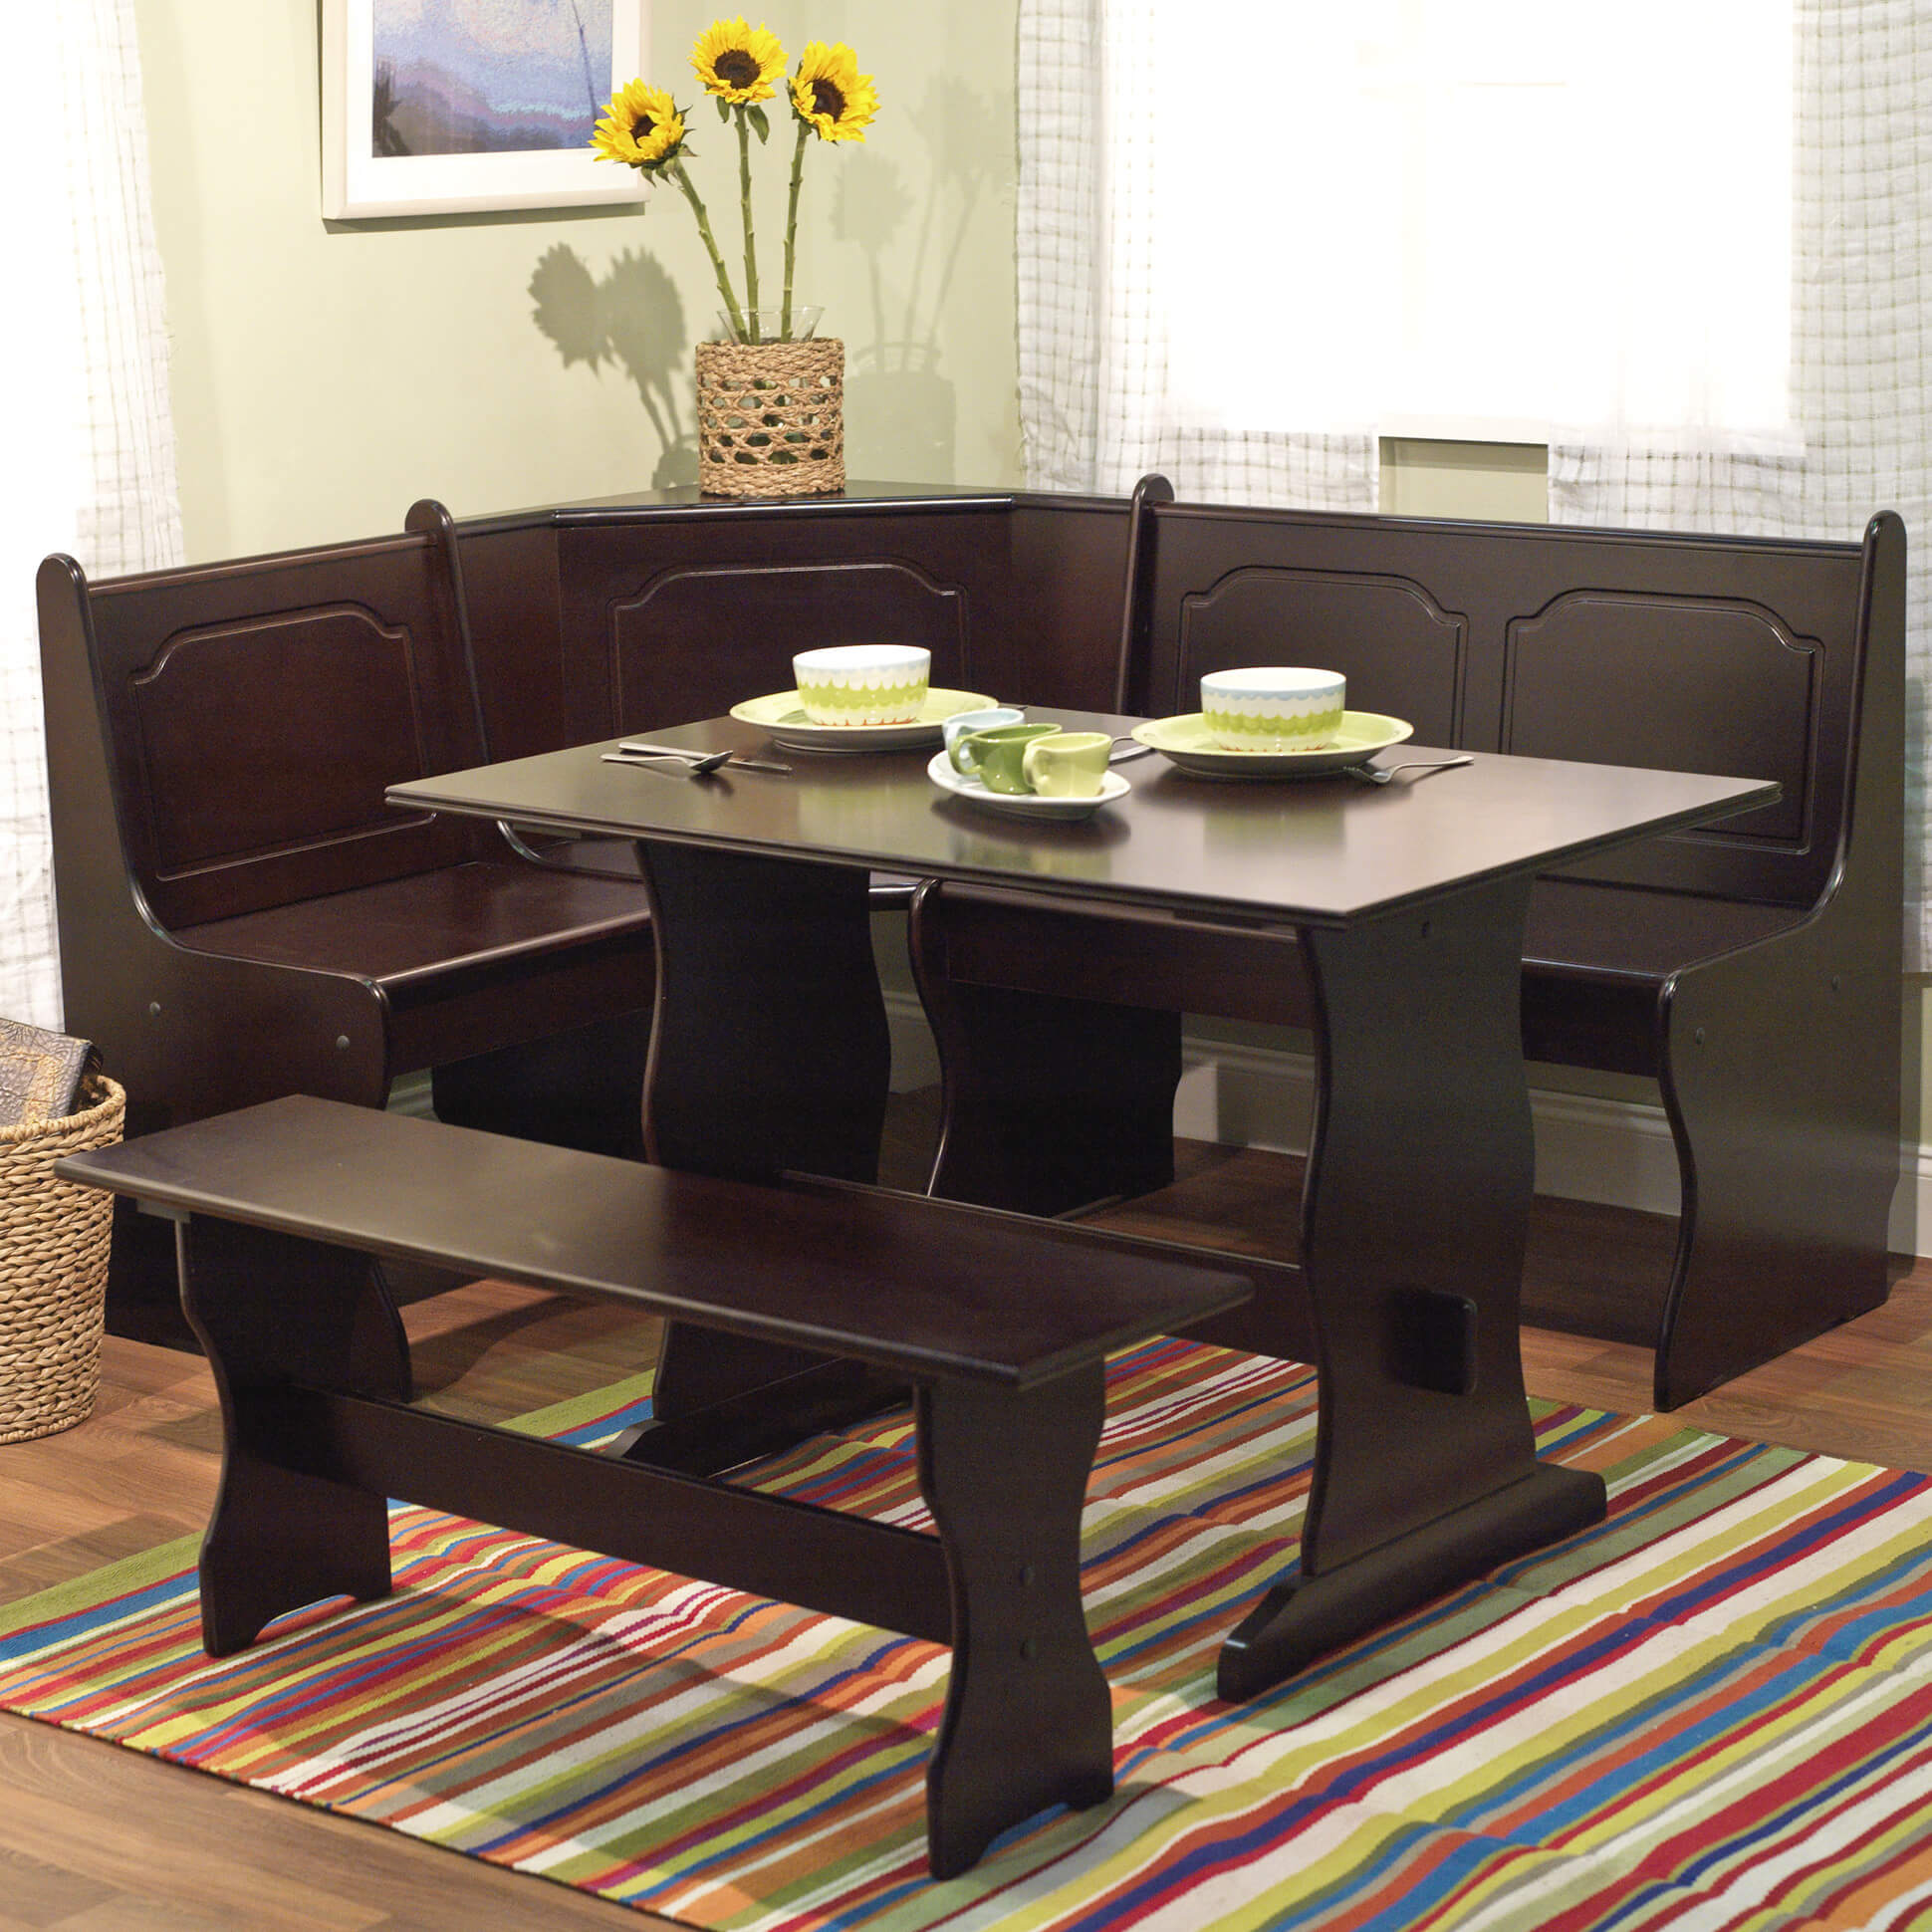 2 tms breakfast nook - Booth Kitchen Tables